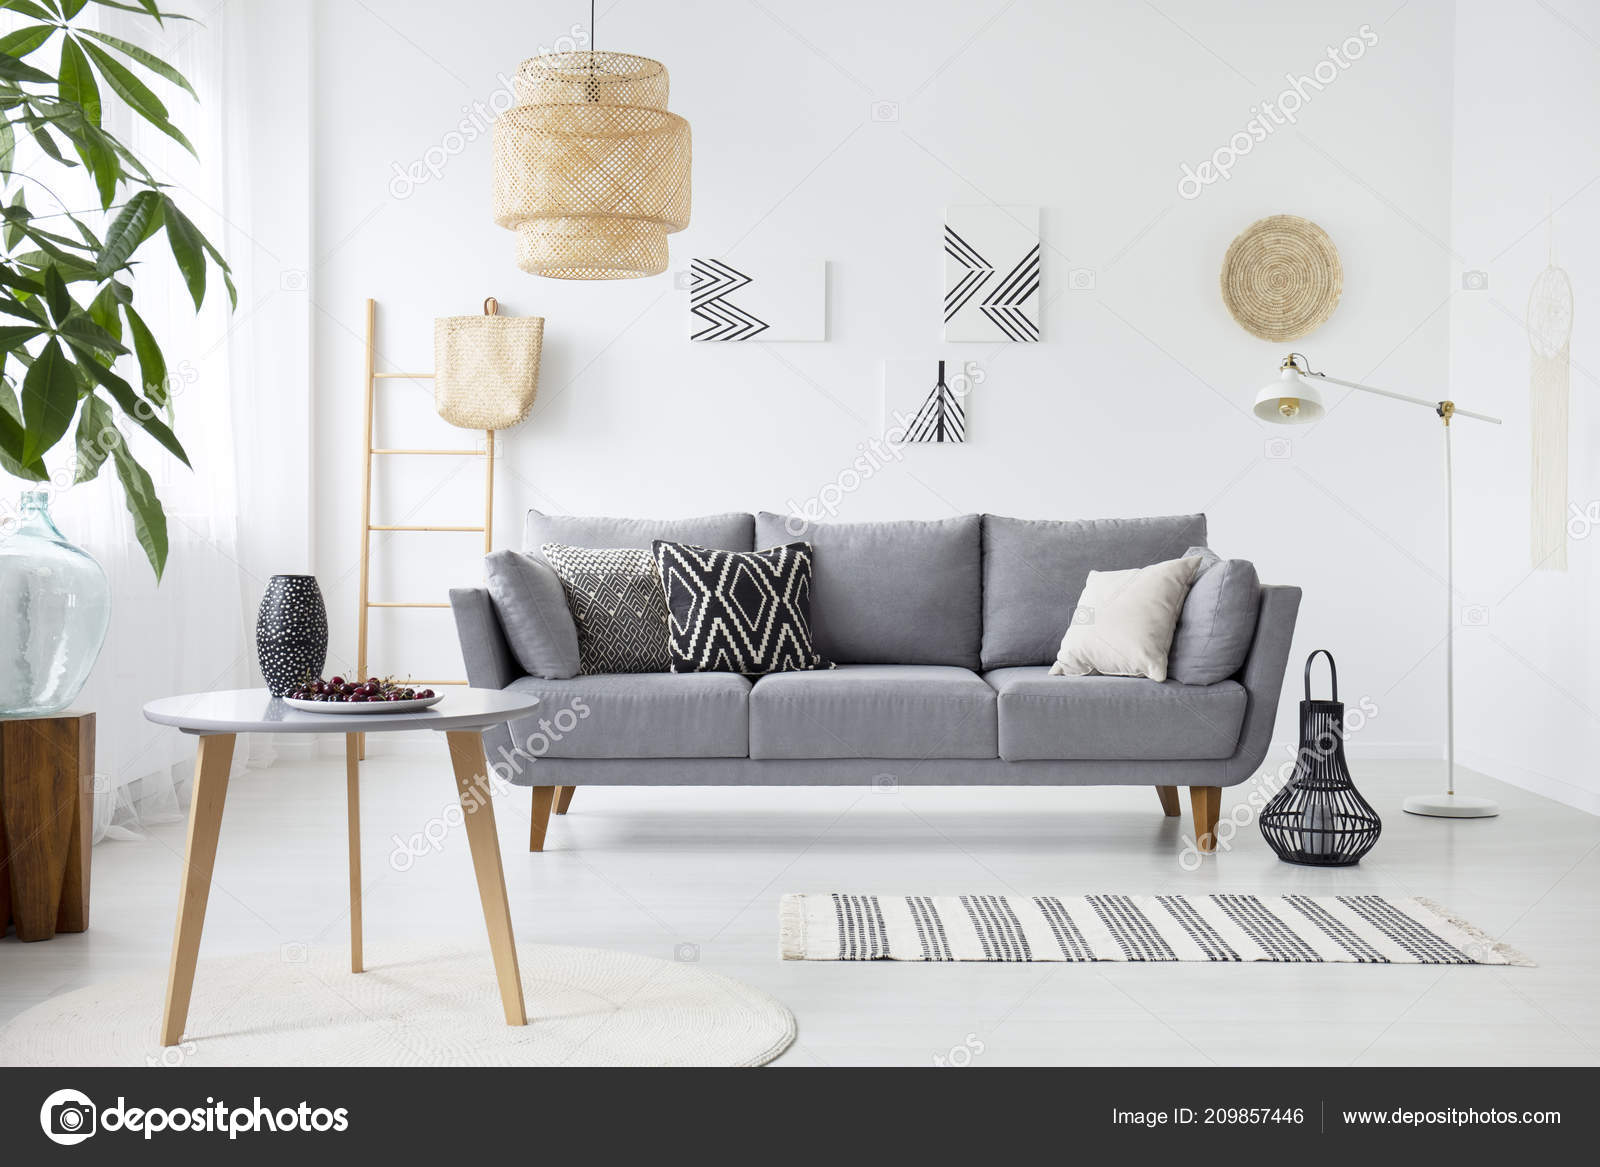 living room cushions ideas for a large wall real photo simple interior gray sofa paintings stock